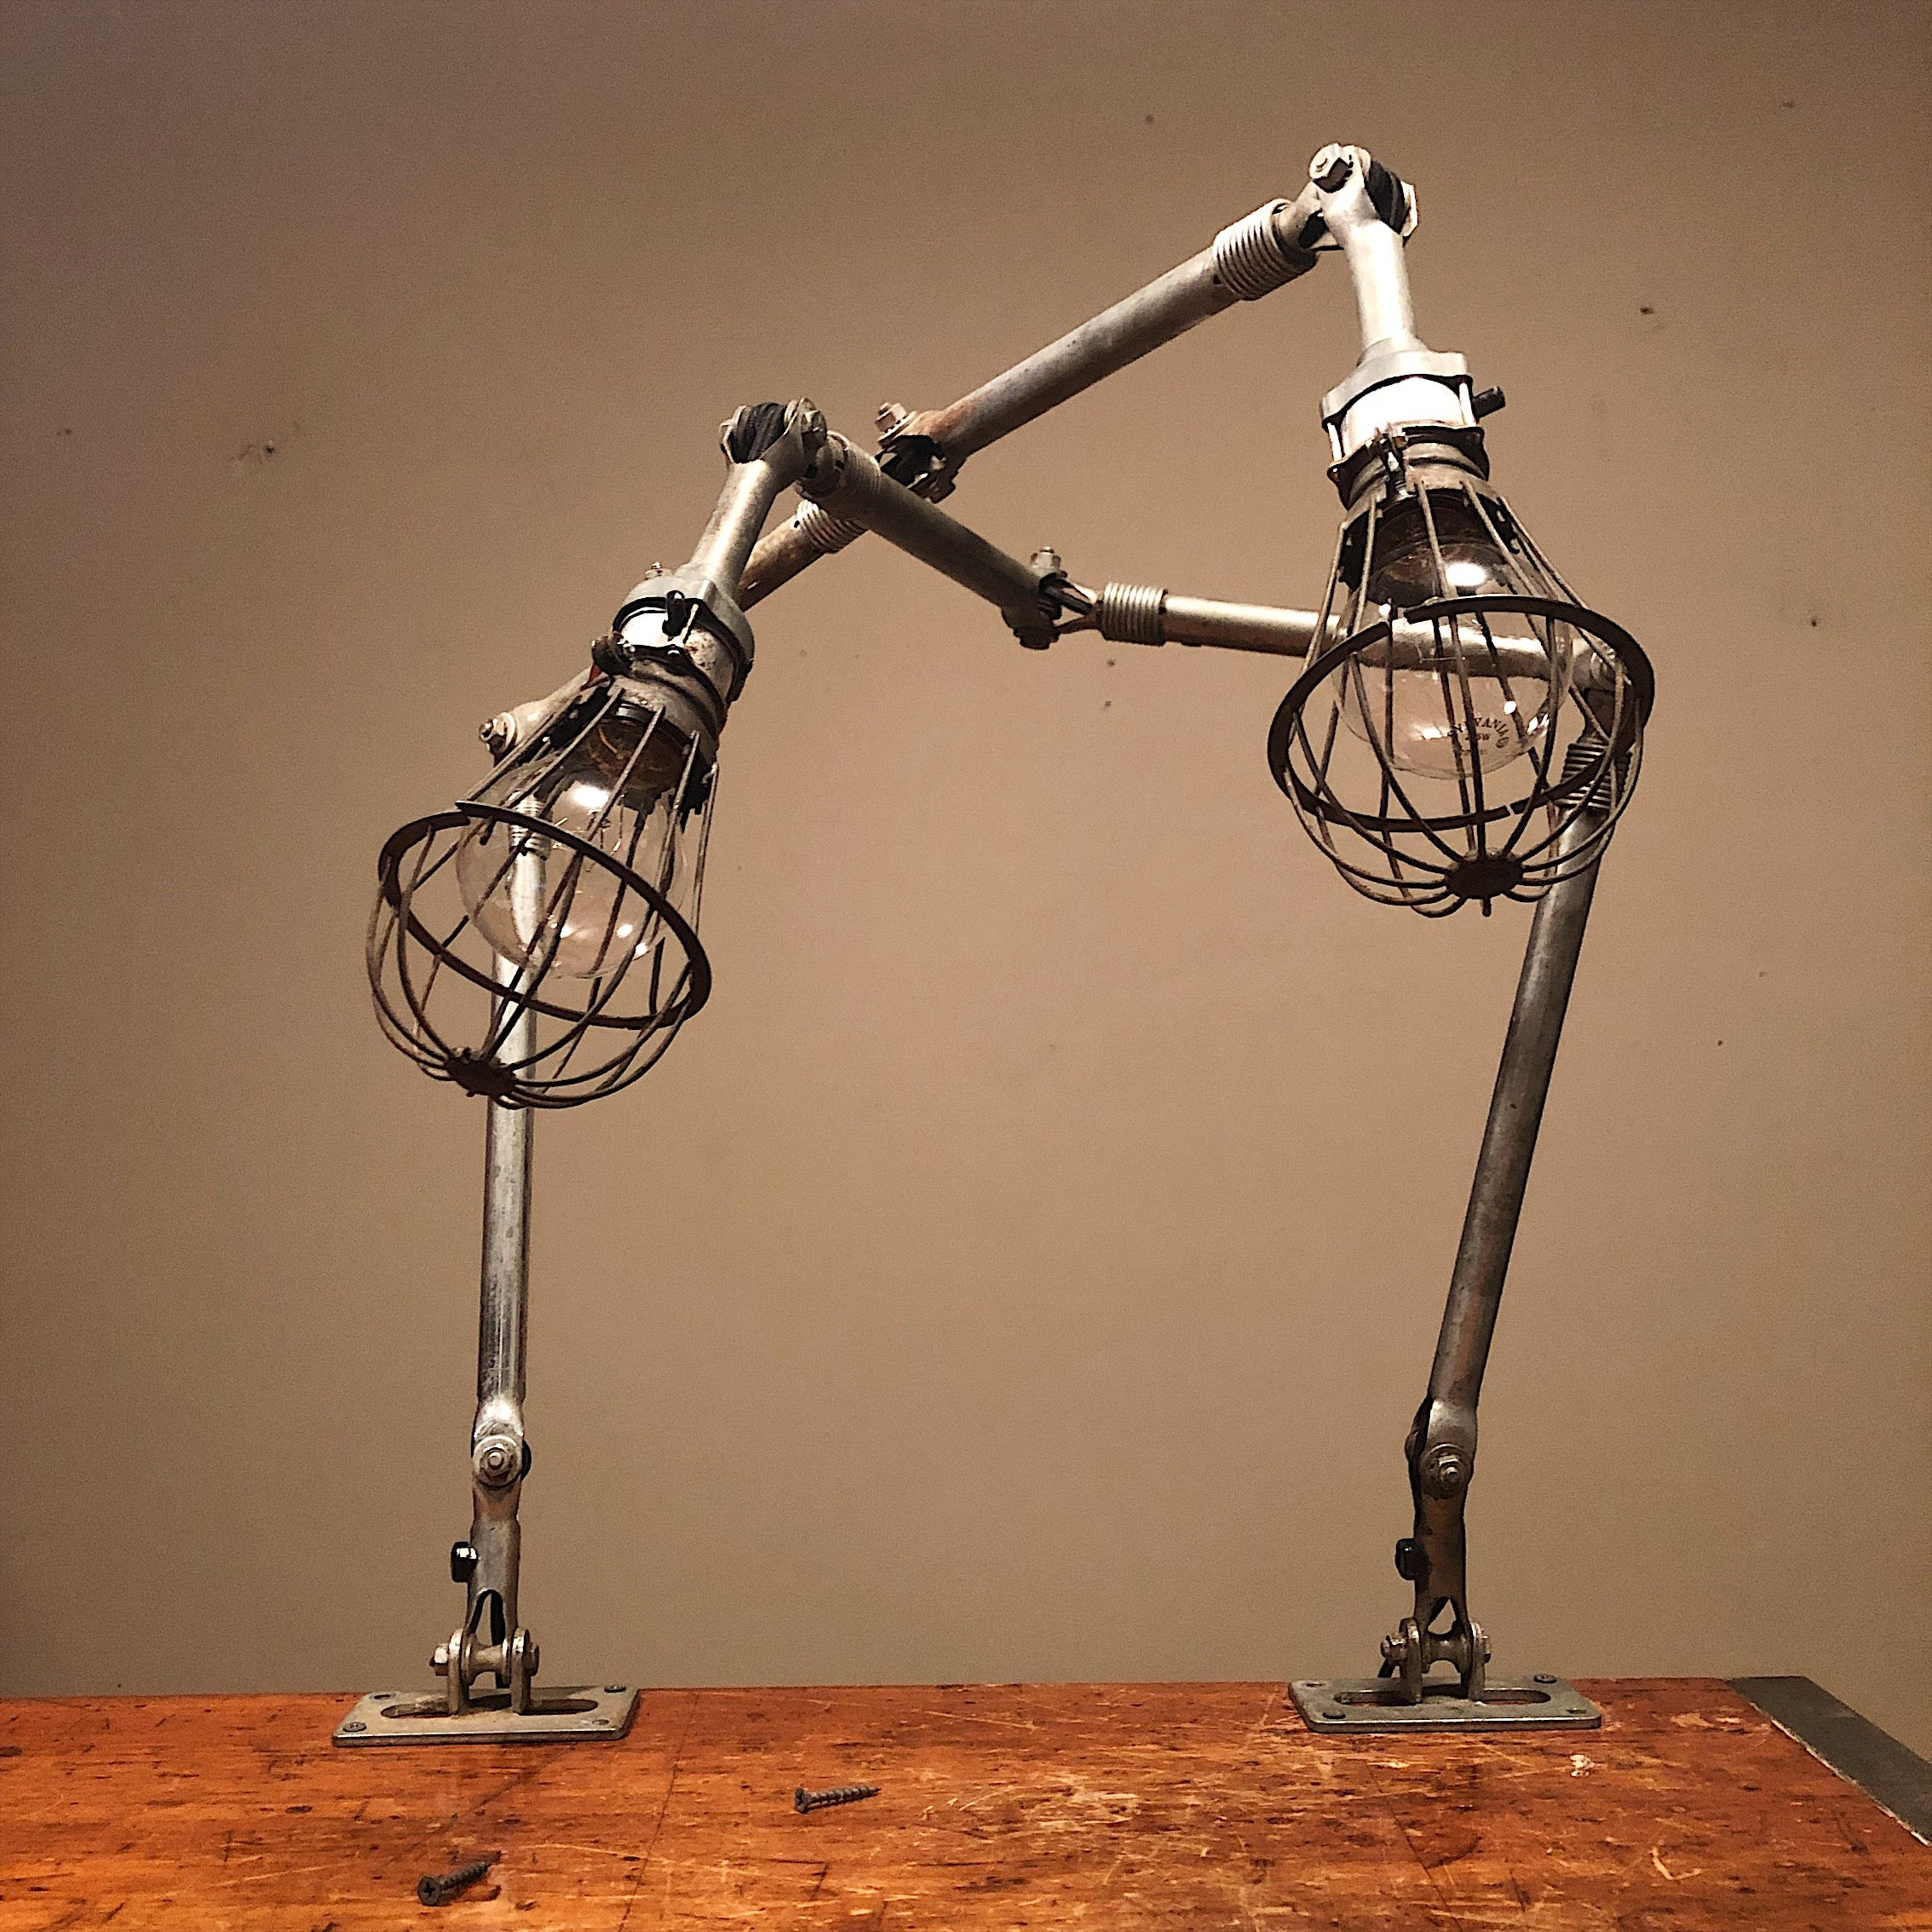 Vintage Ajusco Loc Industrial Task Lights - Set of Articulating Lamps with Cage Protectors - 1950s - Industrial Decor - Machinist